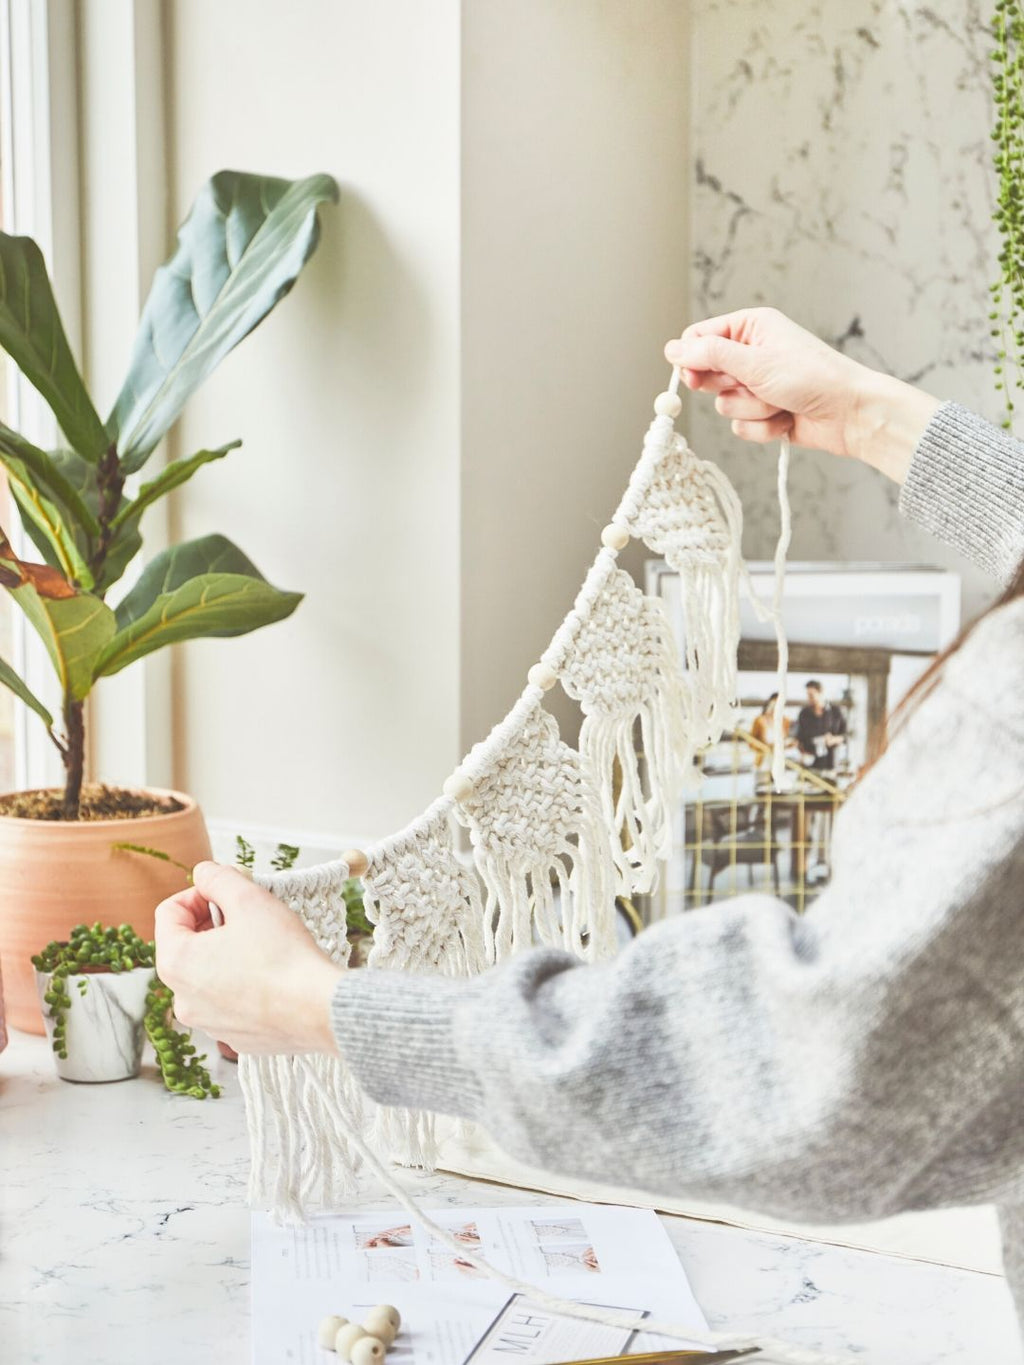 Macrame Bunting Craft Kit | Make Range | Shop My Life Handmade